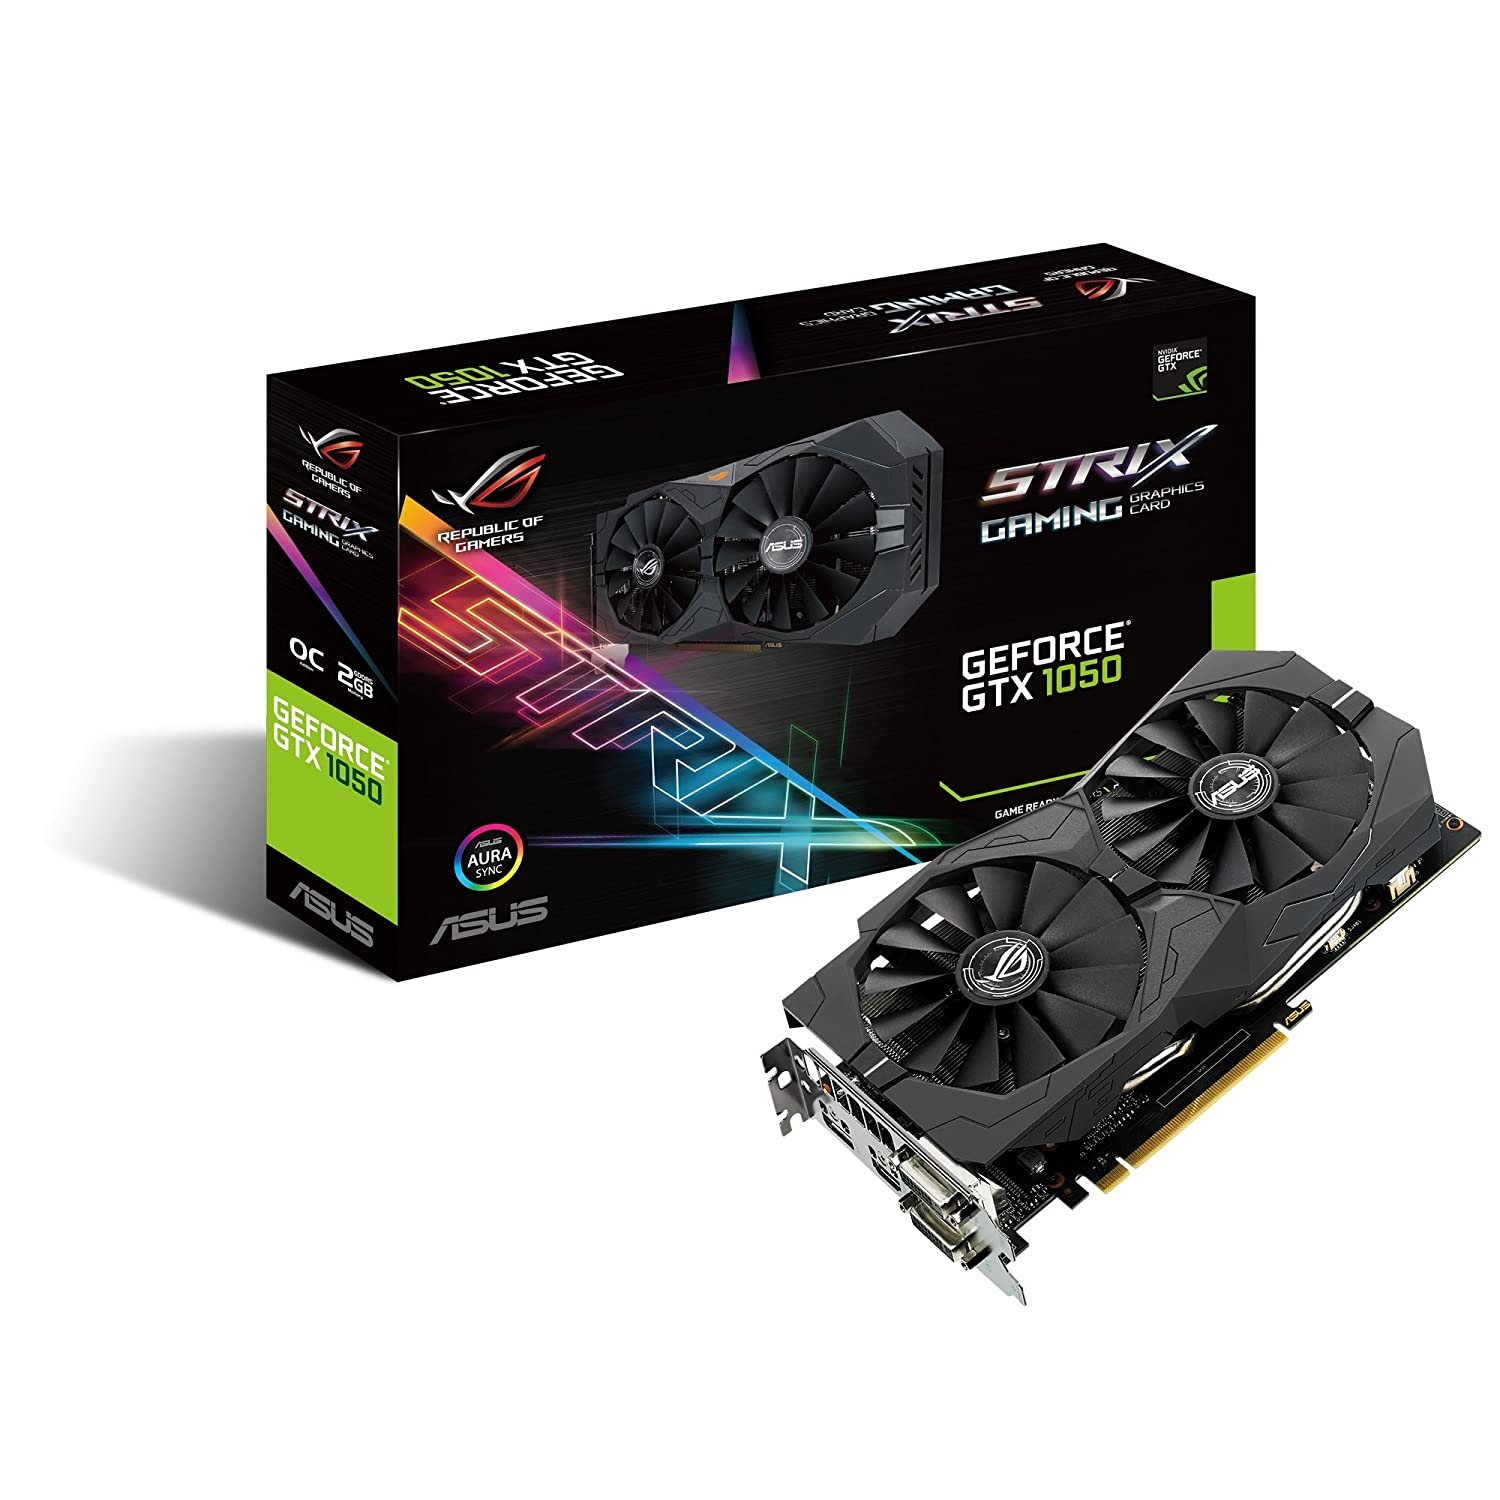 Asus GeForce GTX 1050 STRIX-GTX1050-O2G-GAMING Scheda Grafica da 2 GB, DDR5